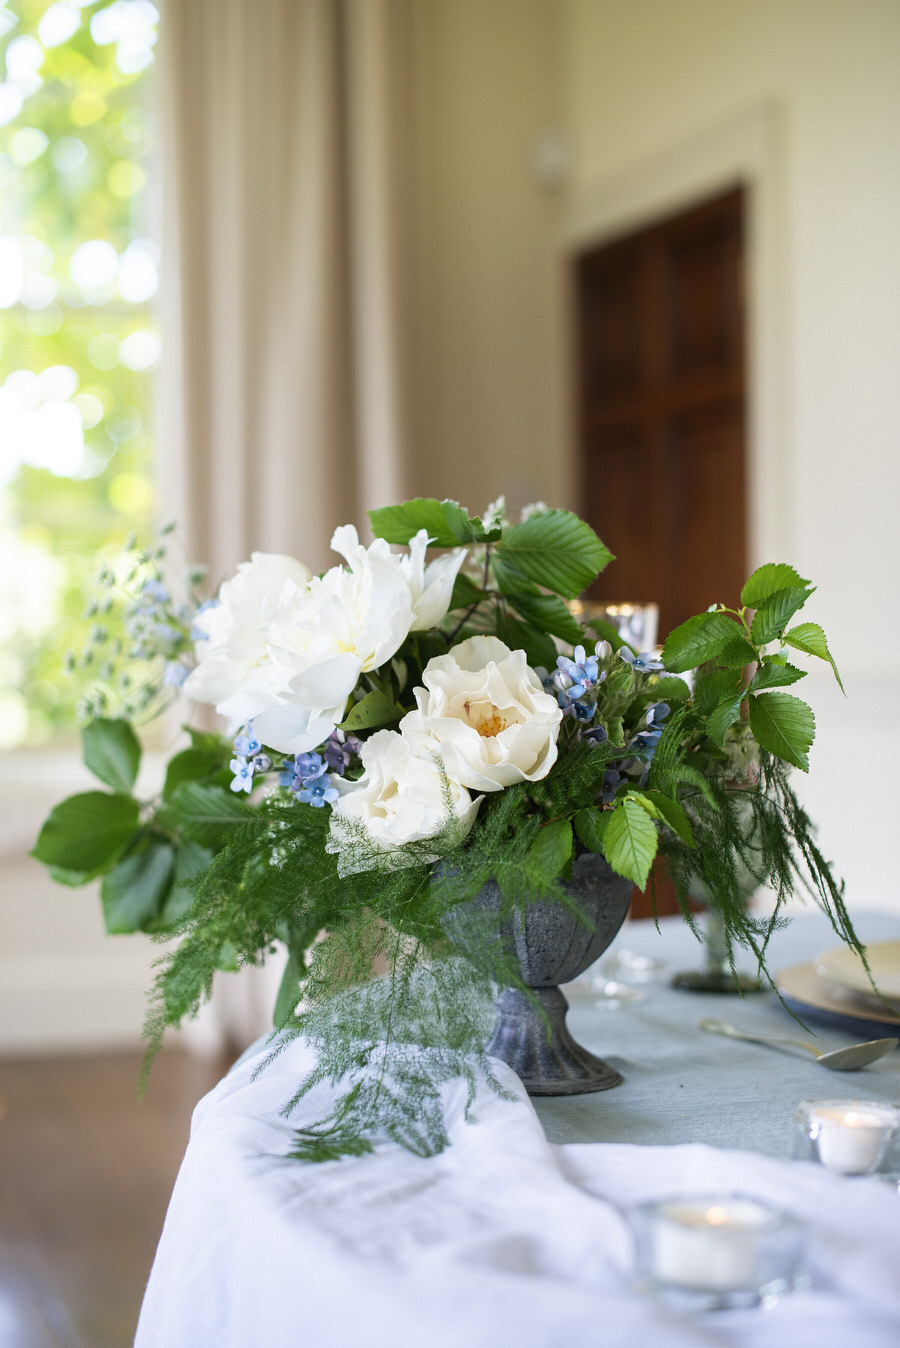 Pynes House wedding styling ideas with Ailsa Munro, Sarah Shuttle and Lottie Ettling PHotography (30)